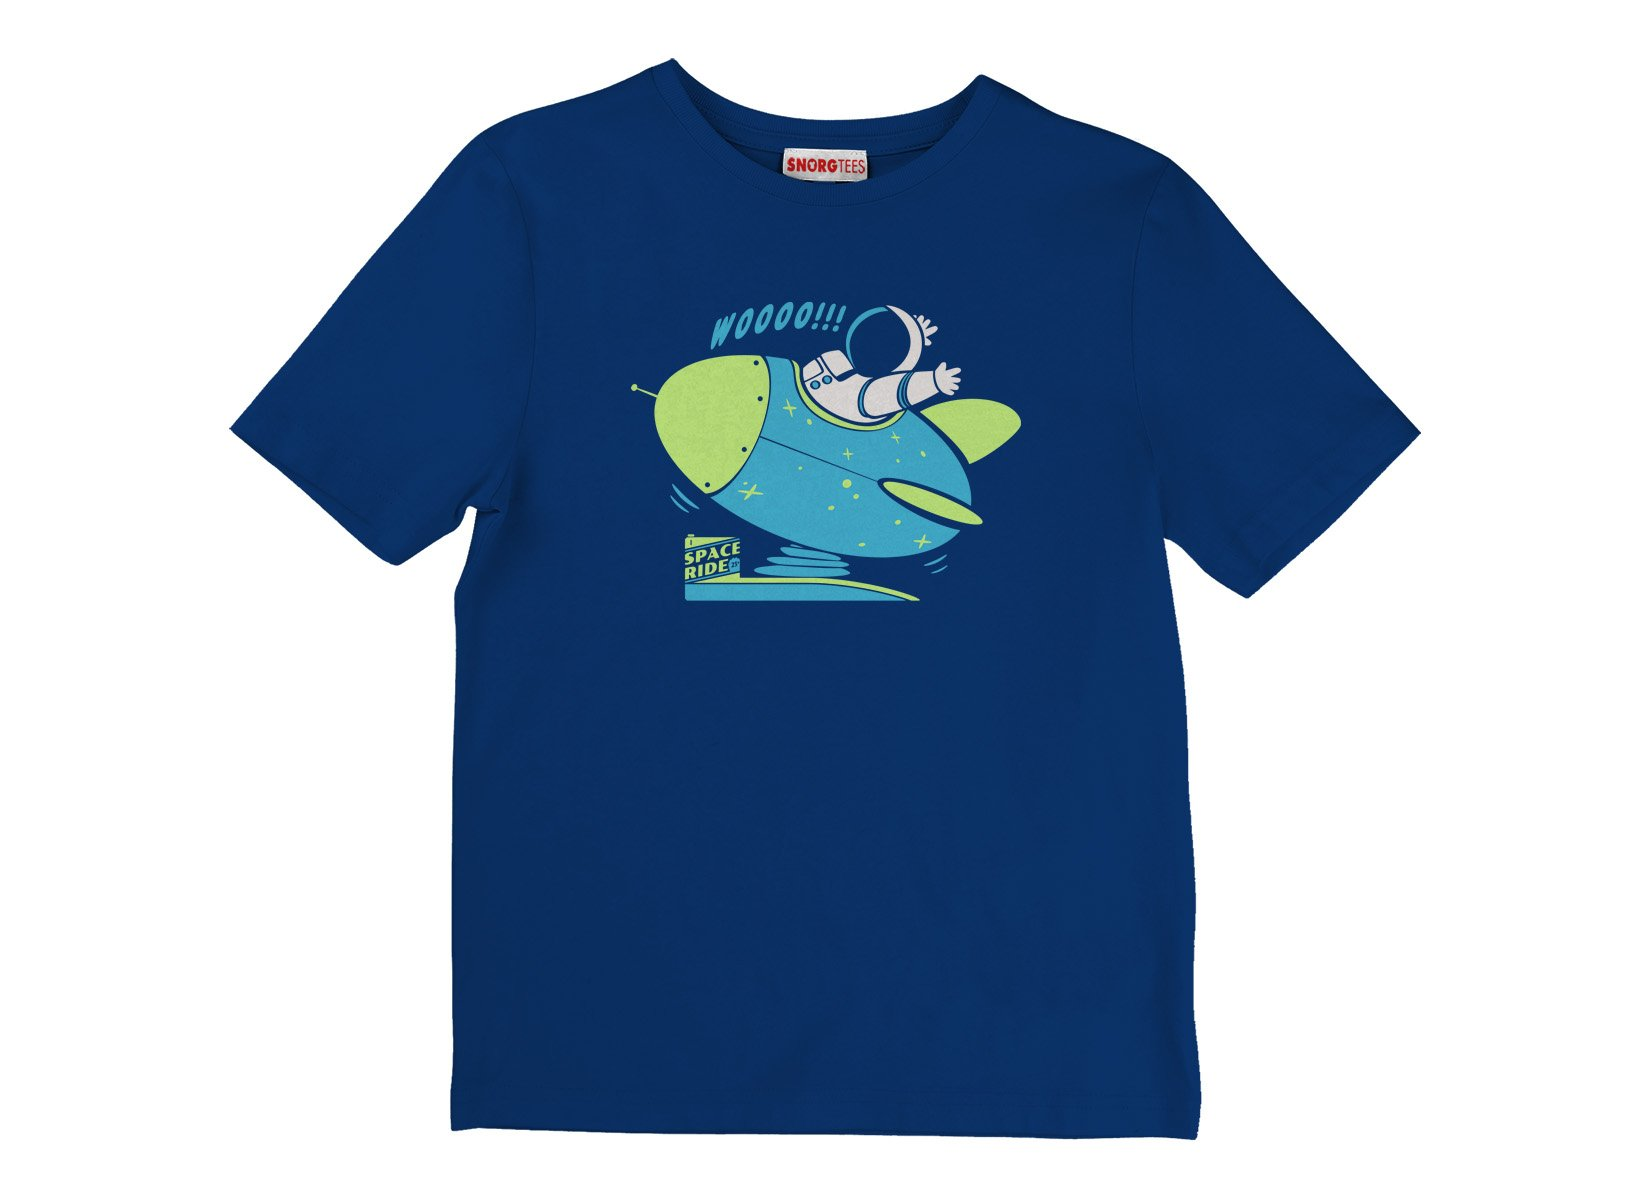 Space Ride on Kids T-Shirt